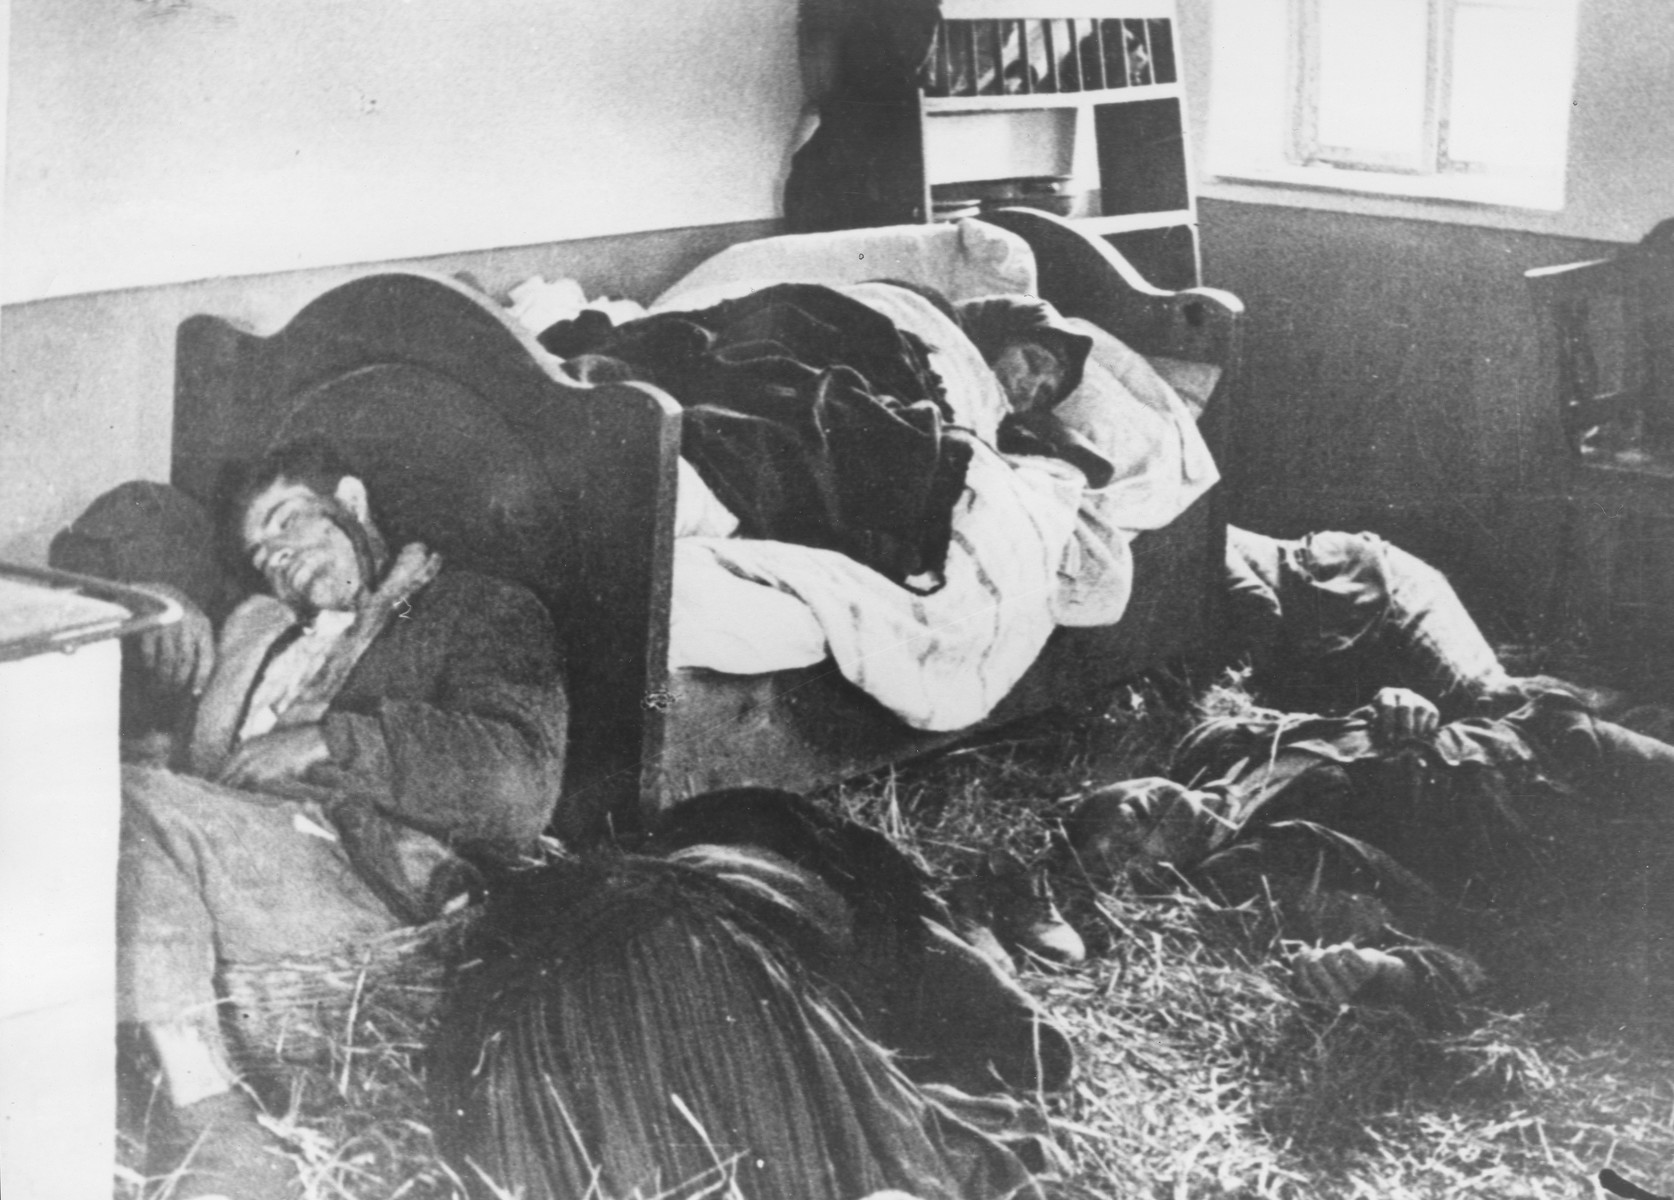 An entire Serbian family lies slaughtered in their home following a raid by the Ustasa militia.